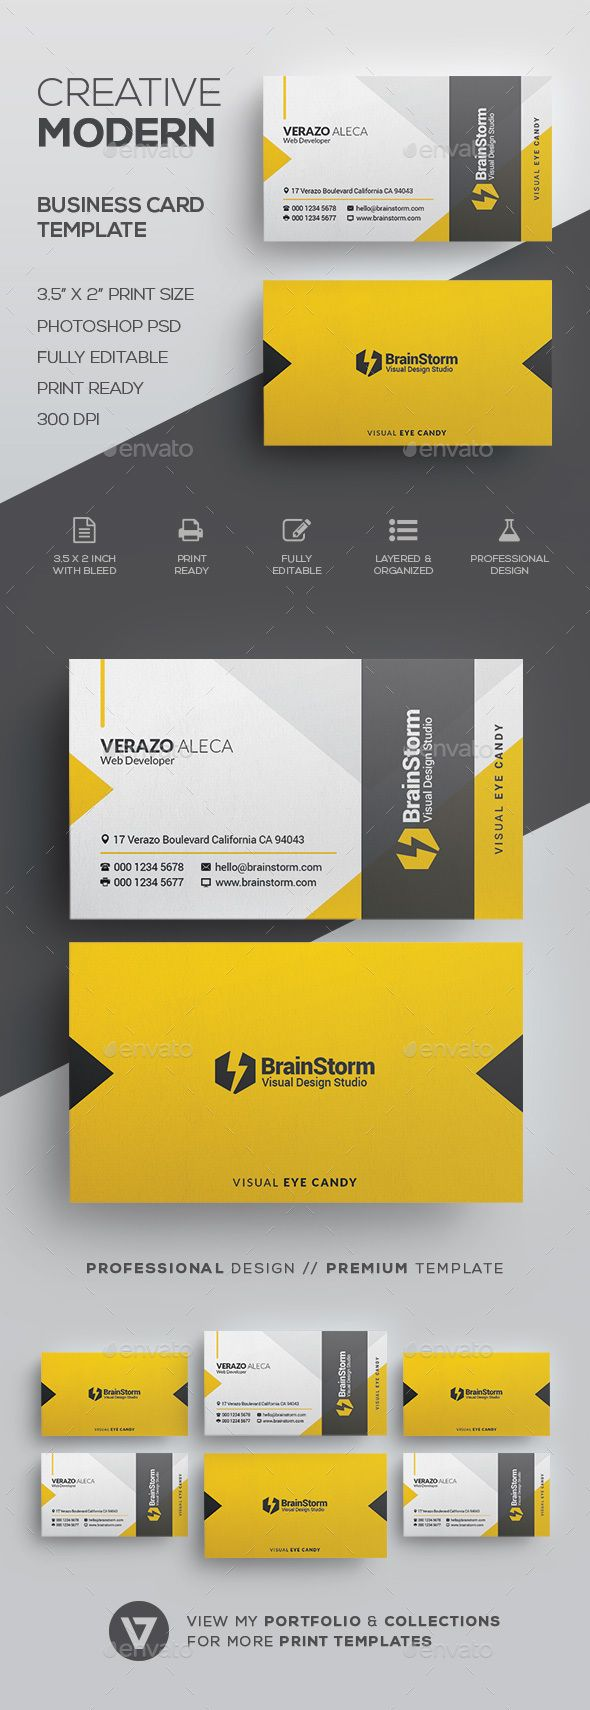 Creative modern business card template cartes de visita visita e creative modern business card template reheart Images